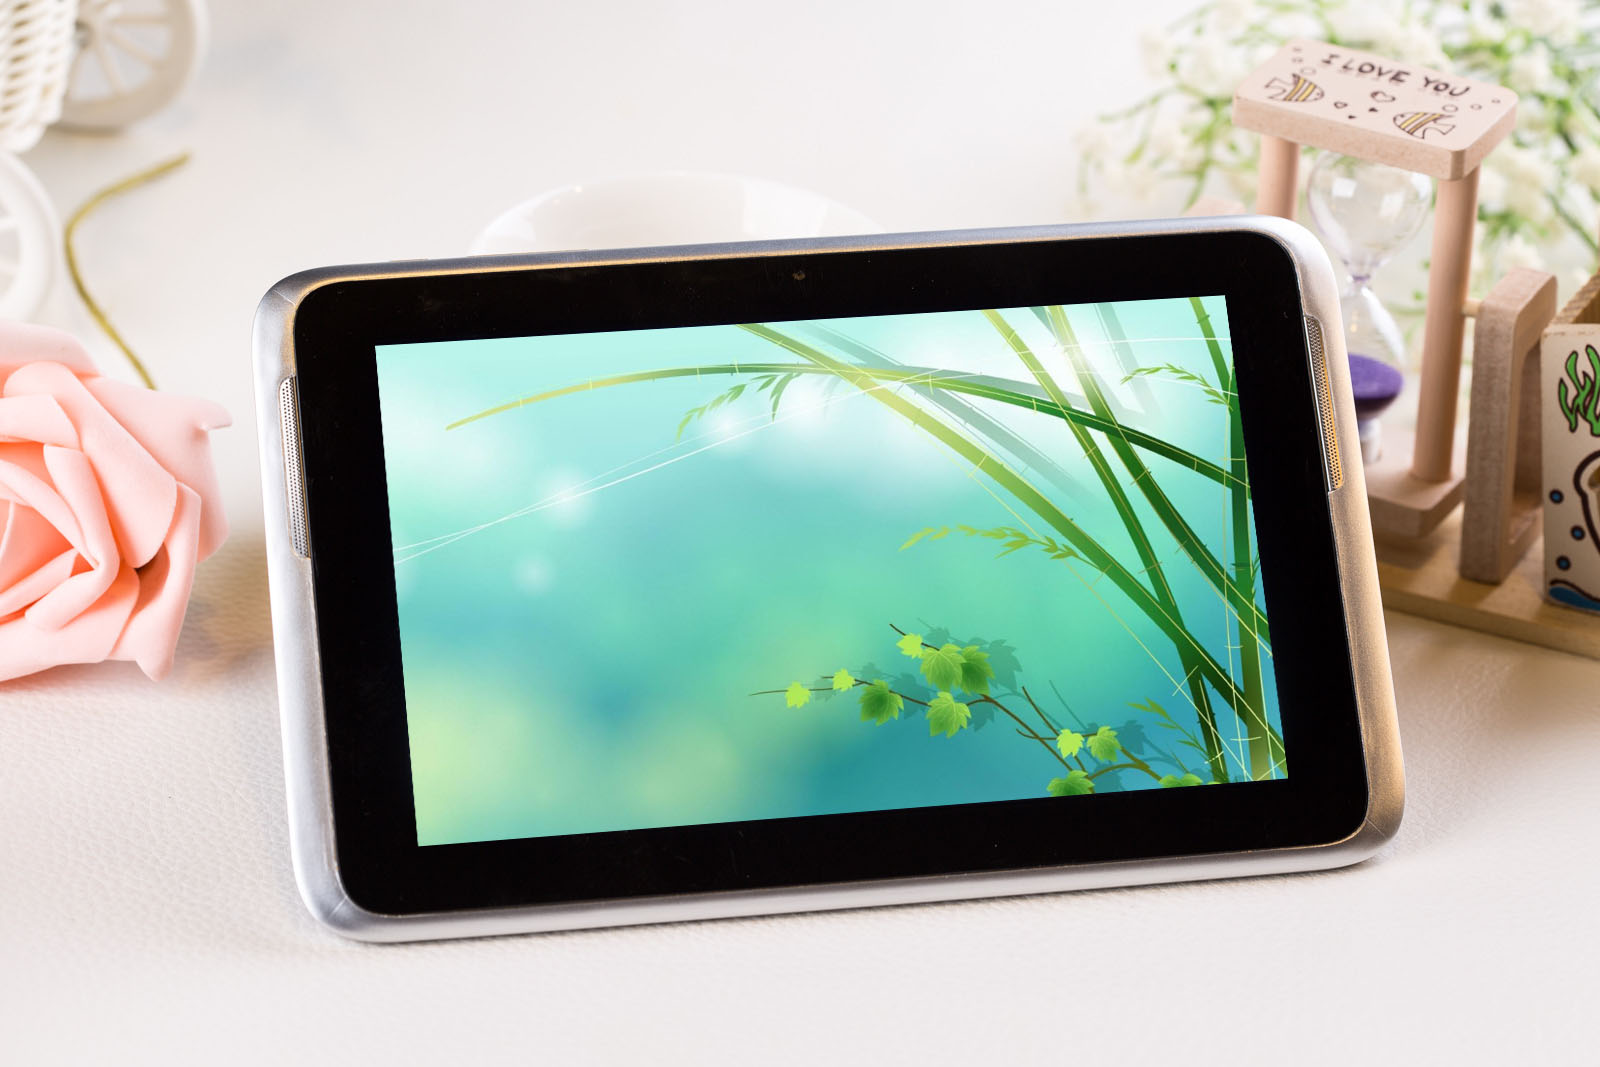 709B-7 inch Android 2G Phone Calling Tablet PC with WiFi Bluetooth FM